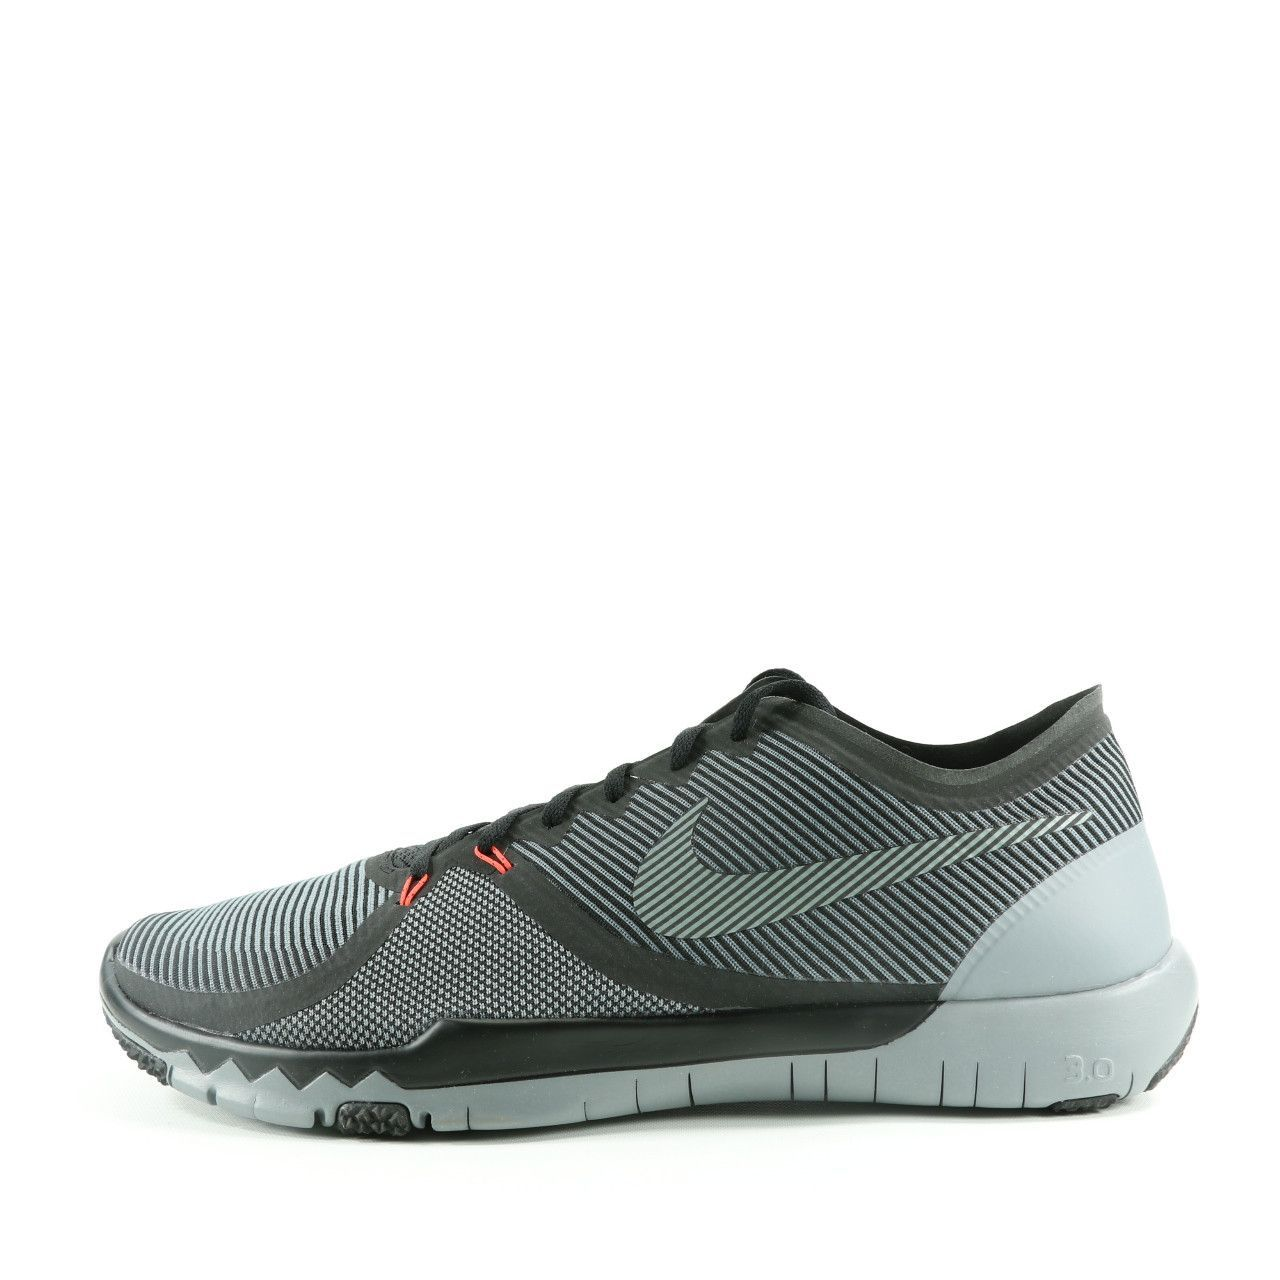 new style 23295 40244 ... buy nike free trainer 3.0 v4 striped running shoes black cool grey  schwarze laufschuhe 2ca73 7e0ac